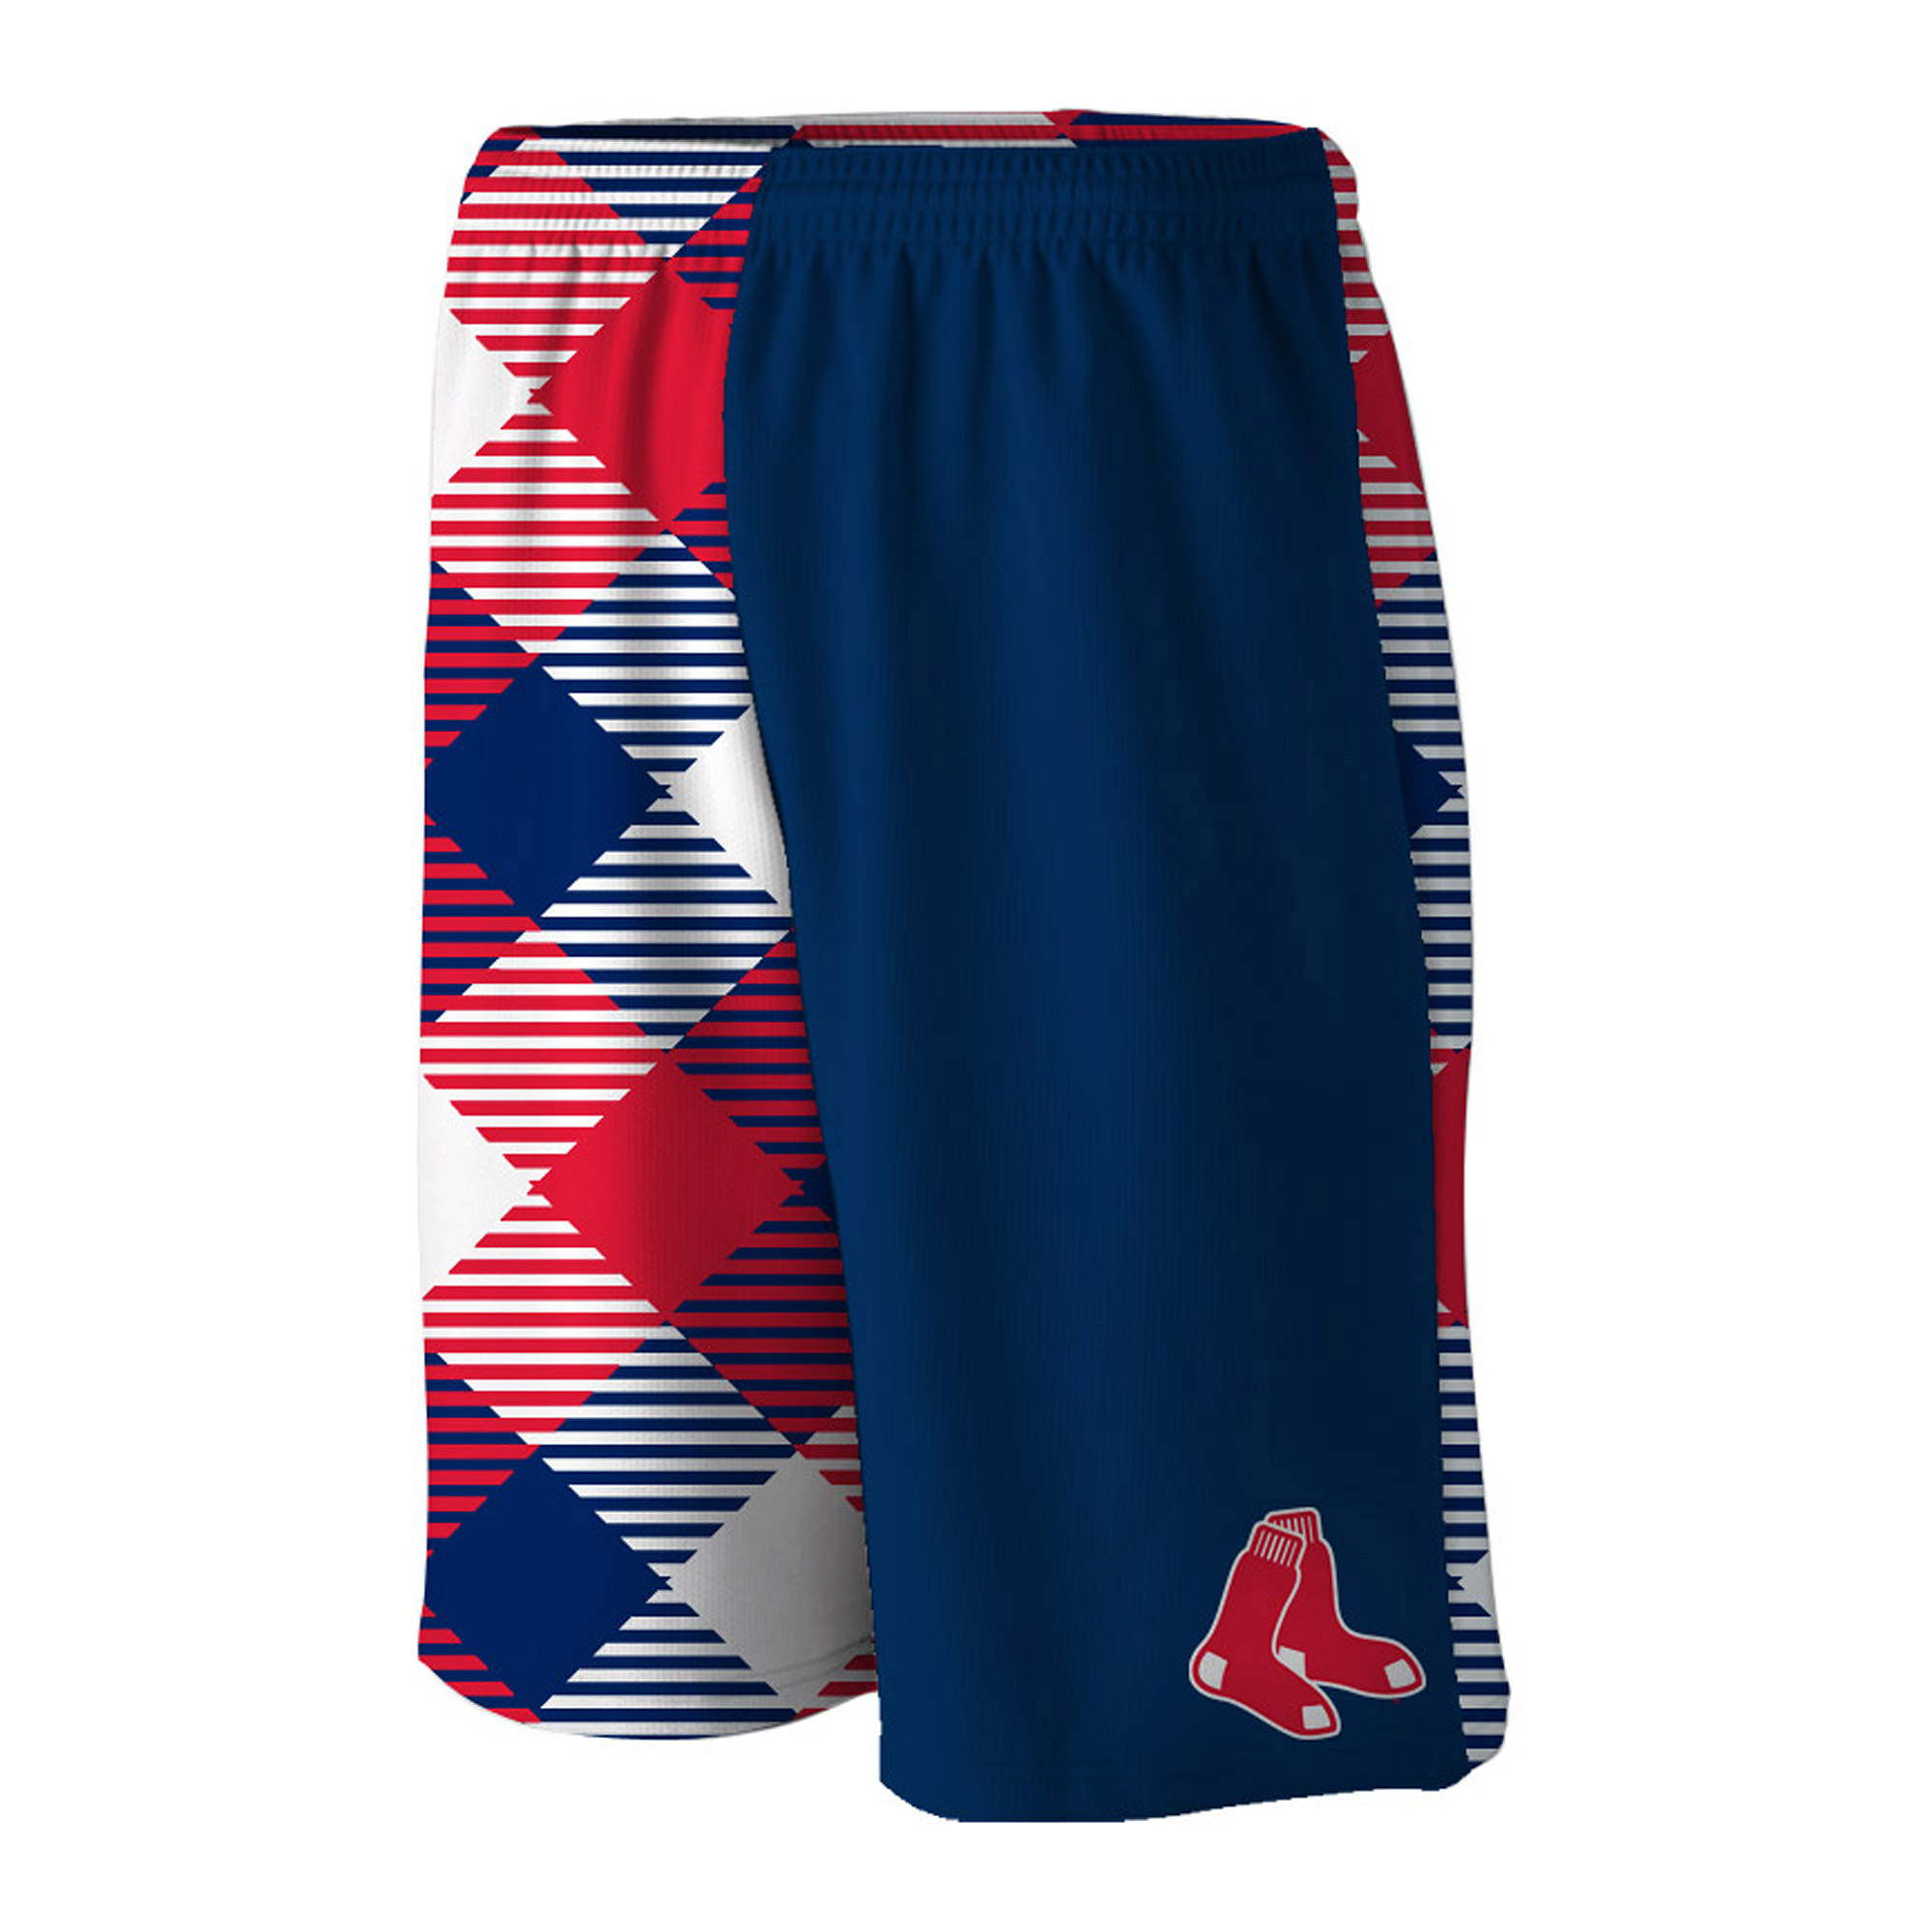 Boston Red Sox Loudmouth Gym Shorts - Navy